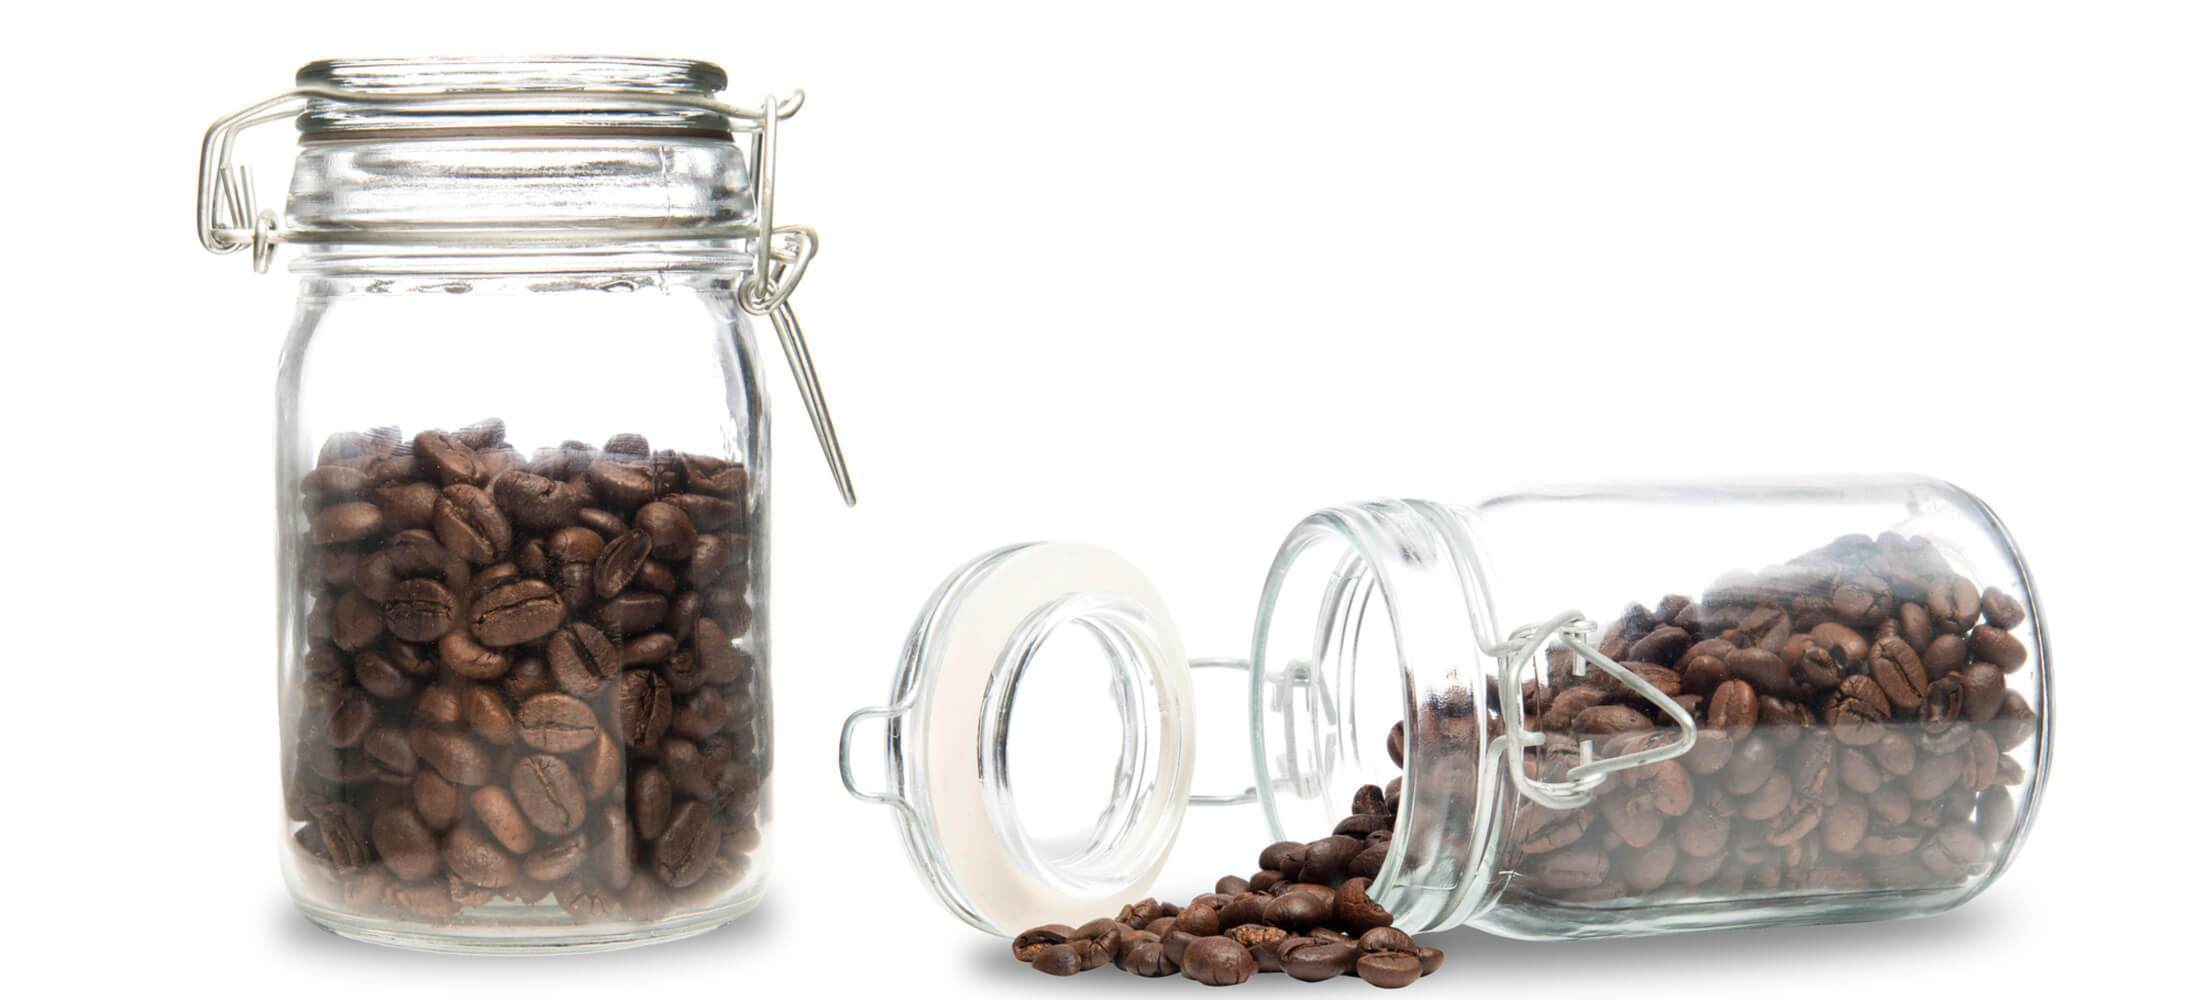 What's the Best Way to Store Coffee Beans? To Freeze or Not to Freeze